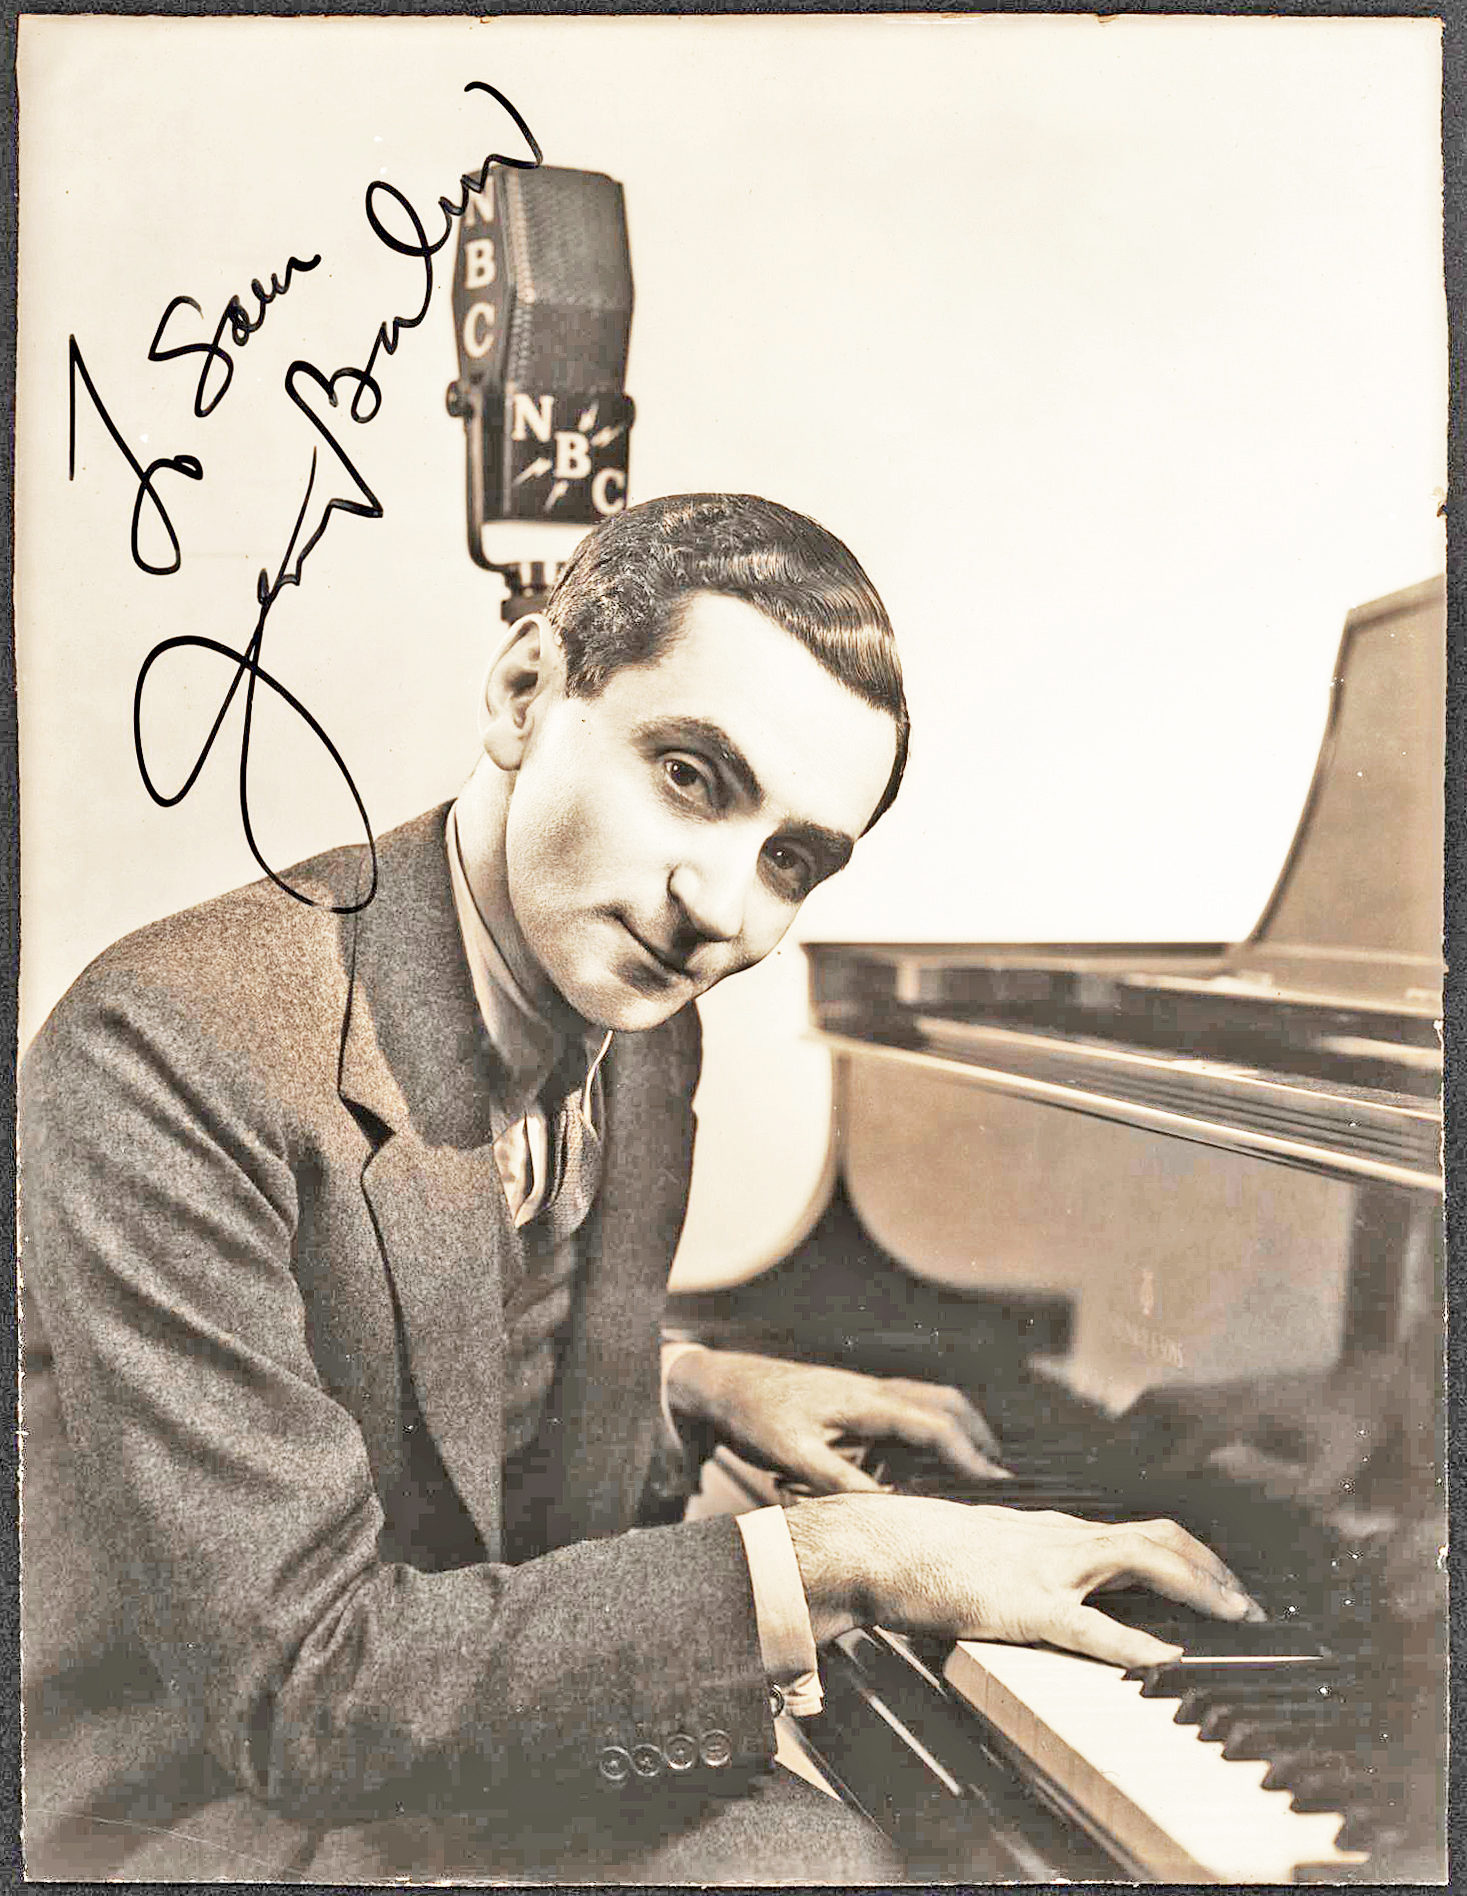 Boldly Signed Vintage Photograph of the Hugely Popular Russian-Born, American Songwriter